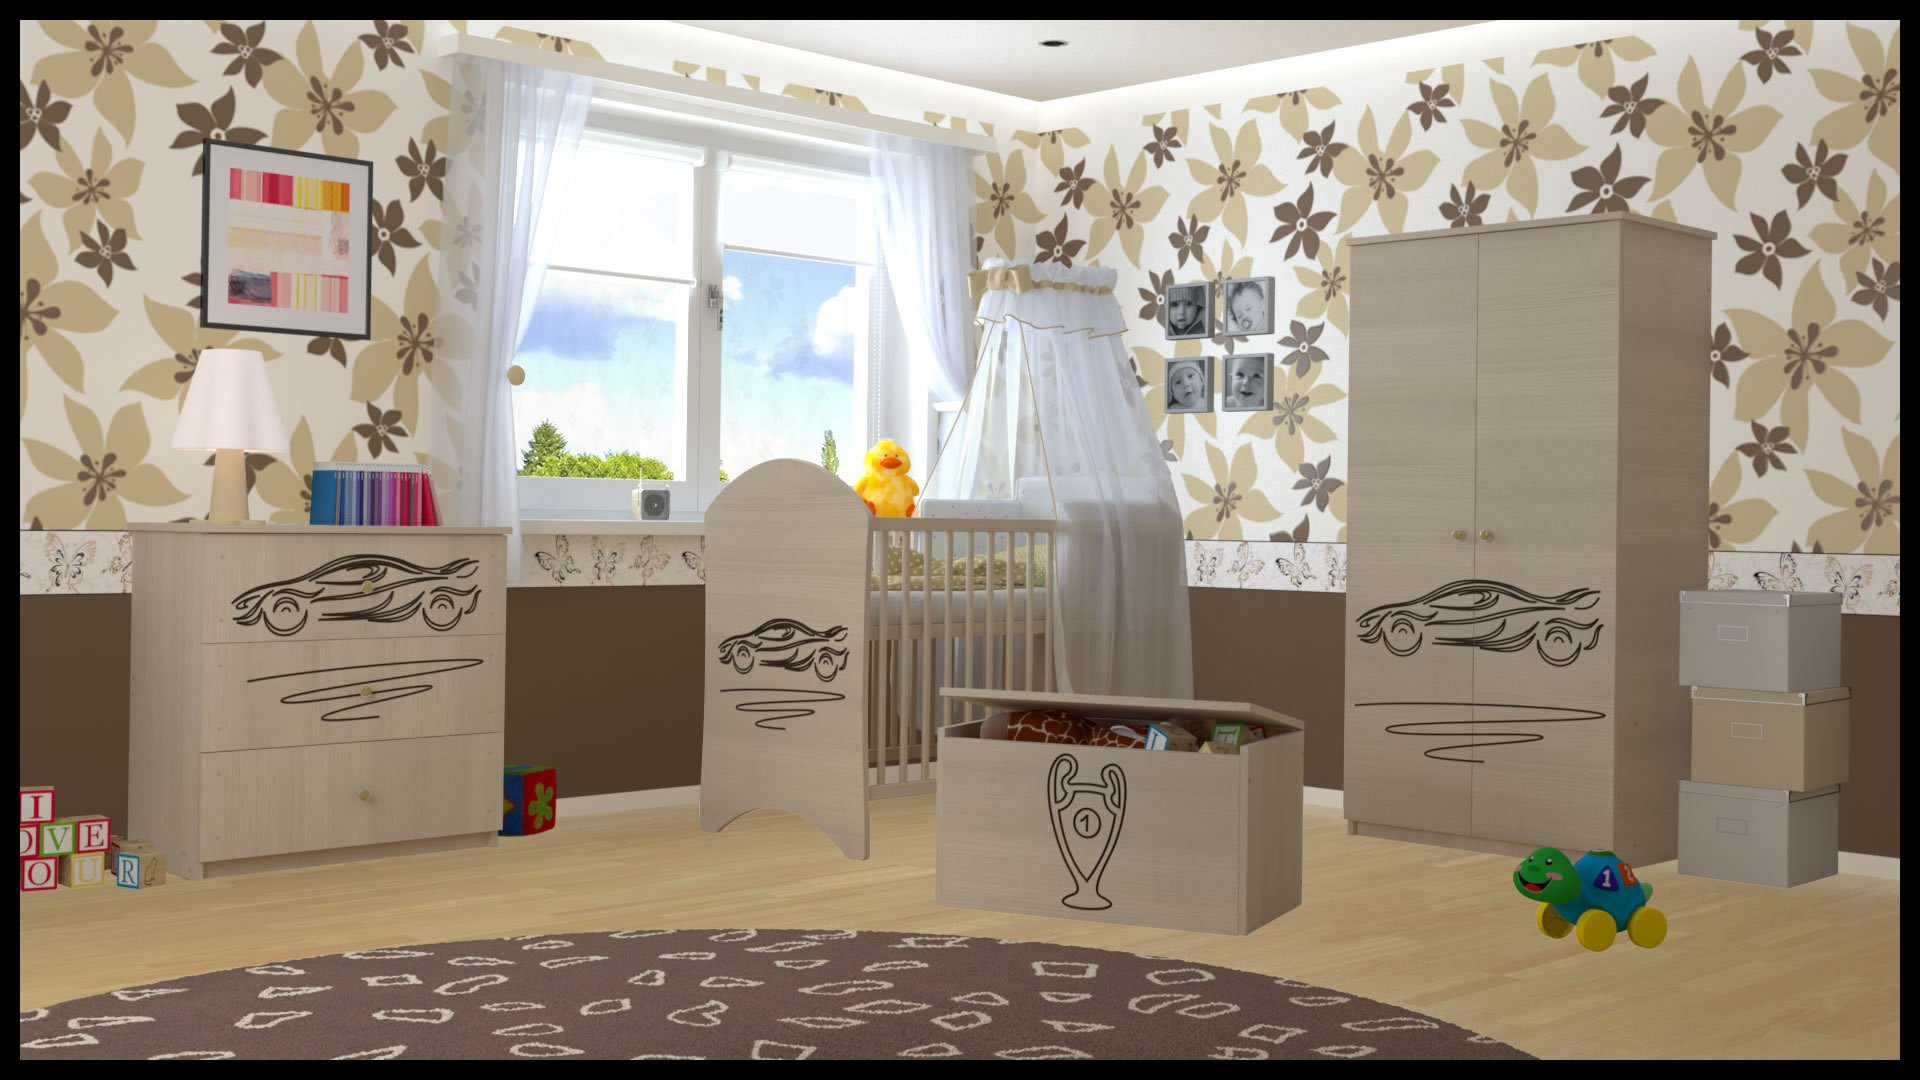 5 PCS BABY NURSERY FURNITURE SET - COT + MATTRESS + WARDROBE + CHEST OF DRAWERS + TOY BOX (model 9)  Included: cot + mattress + wardrobe + chest of drawers + toy box Material: wood GREAT QUALITY 1